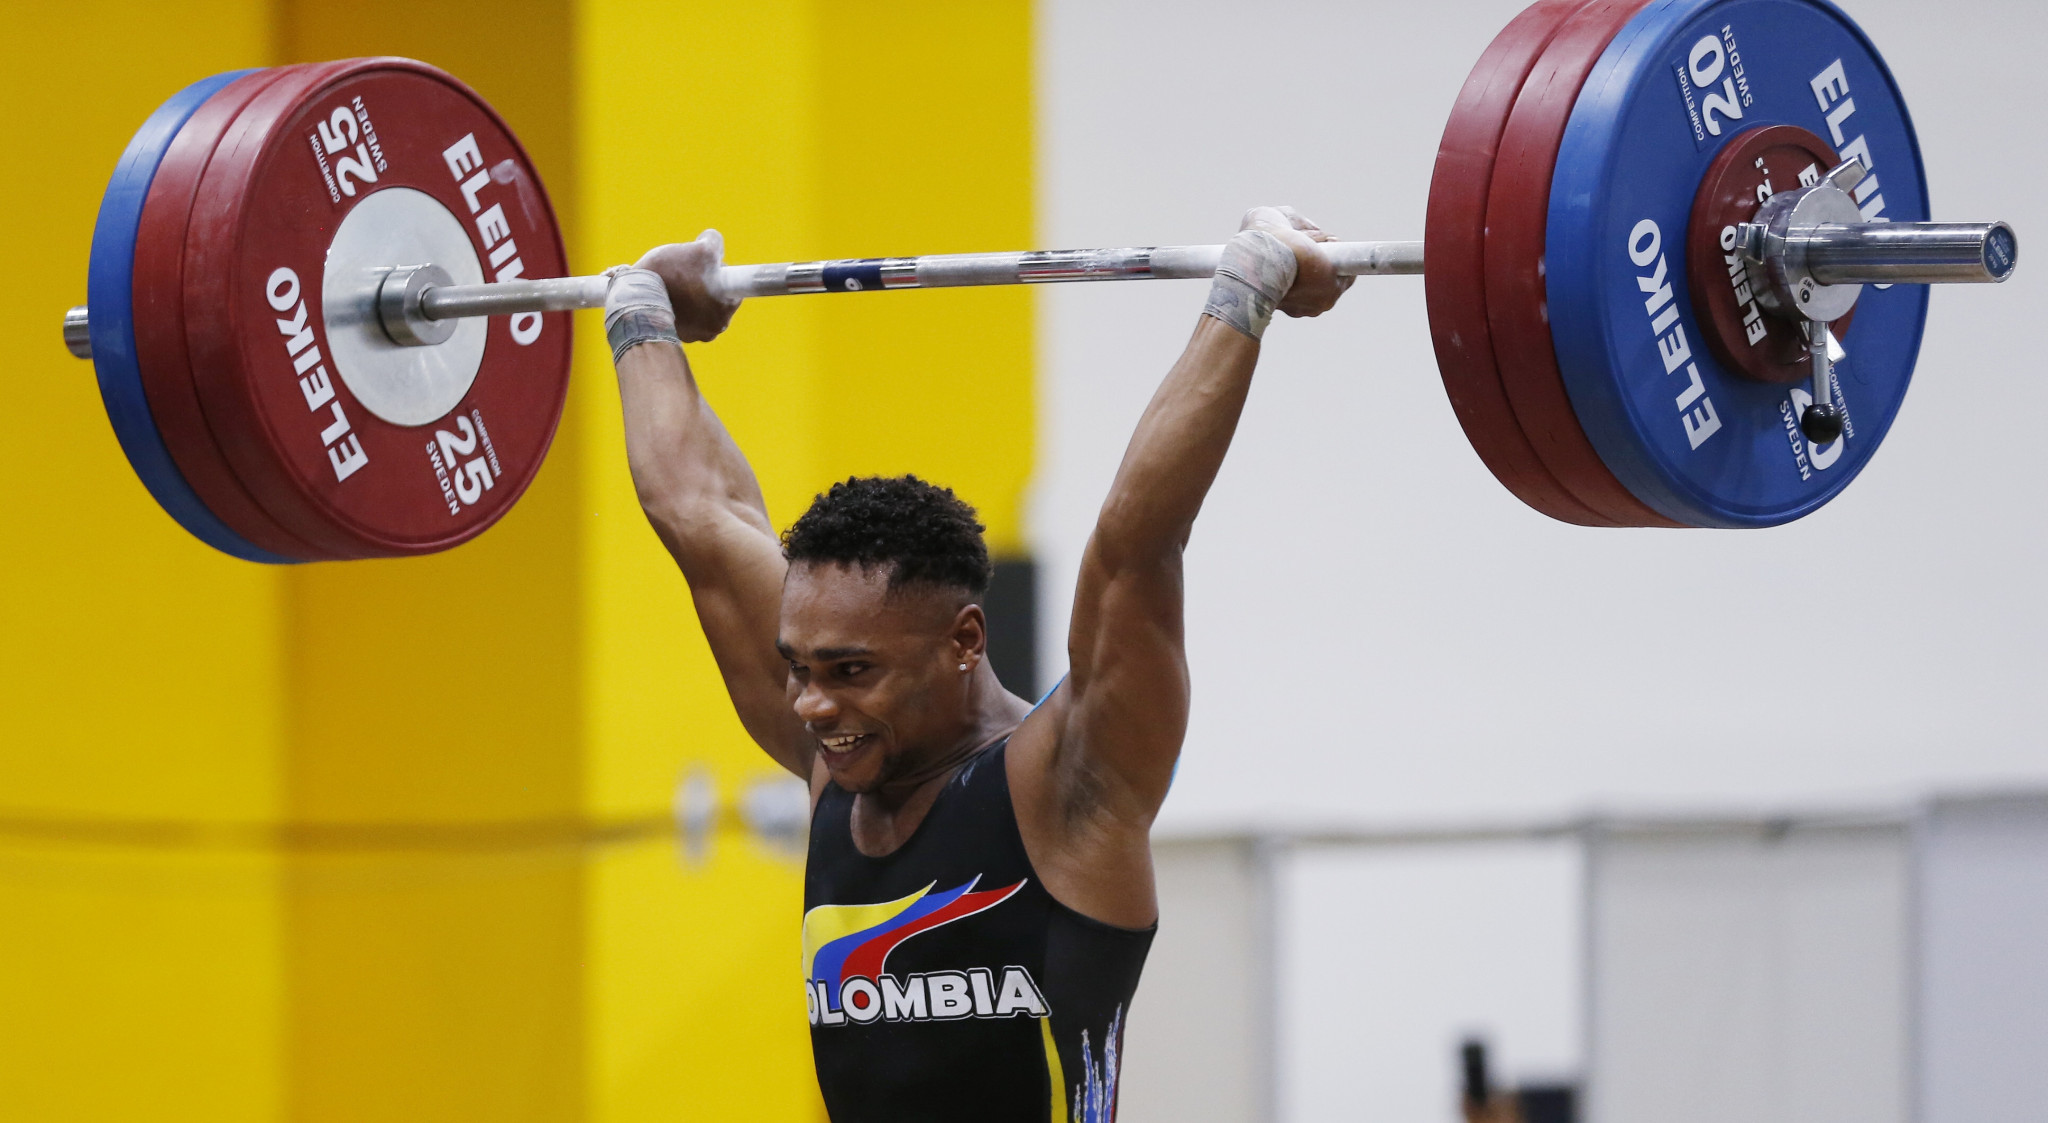 Francisco Mosquera won the first gold medal of the Pan American Championships at an Olympic weight ©Getty Images